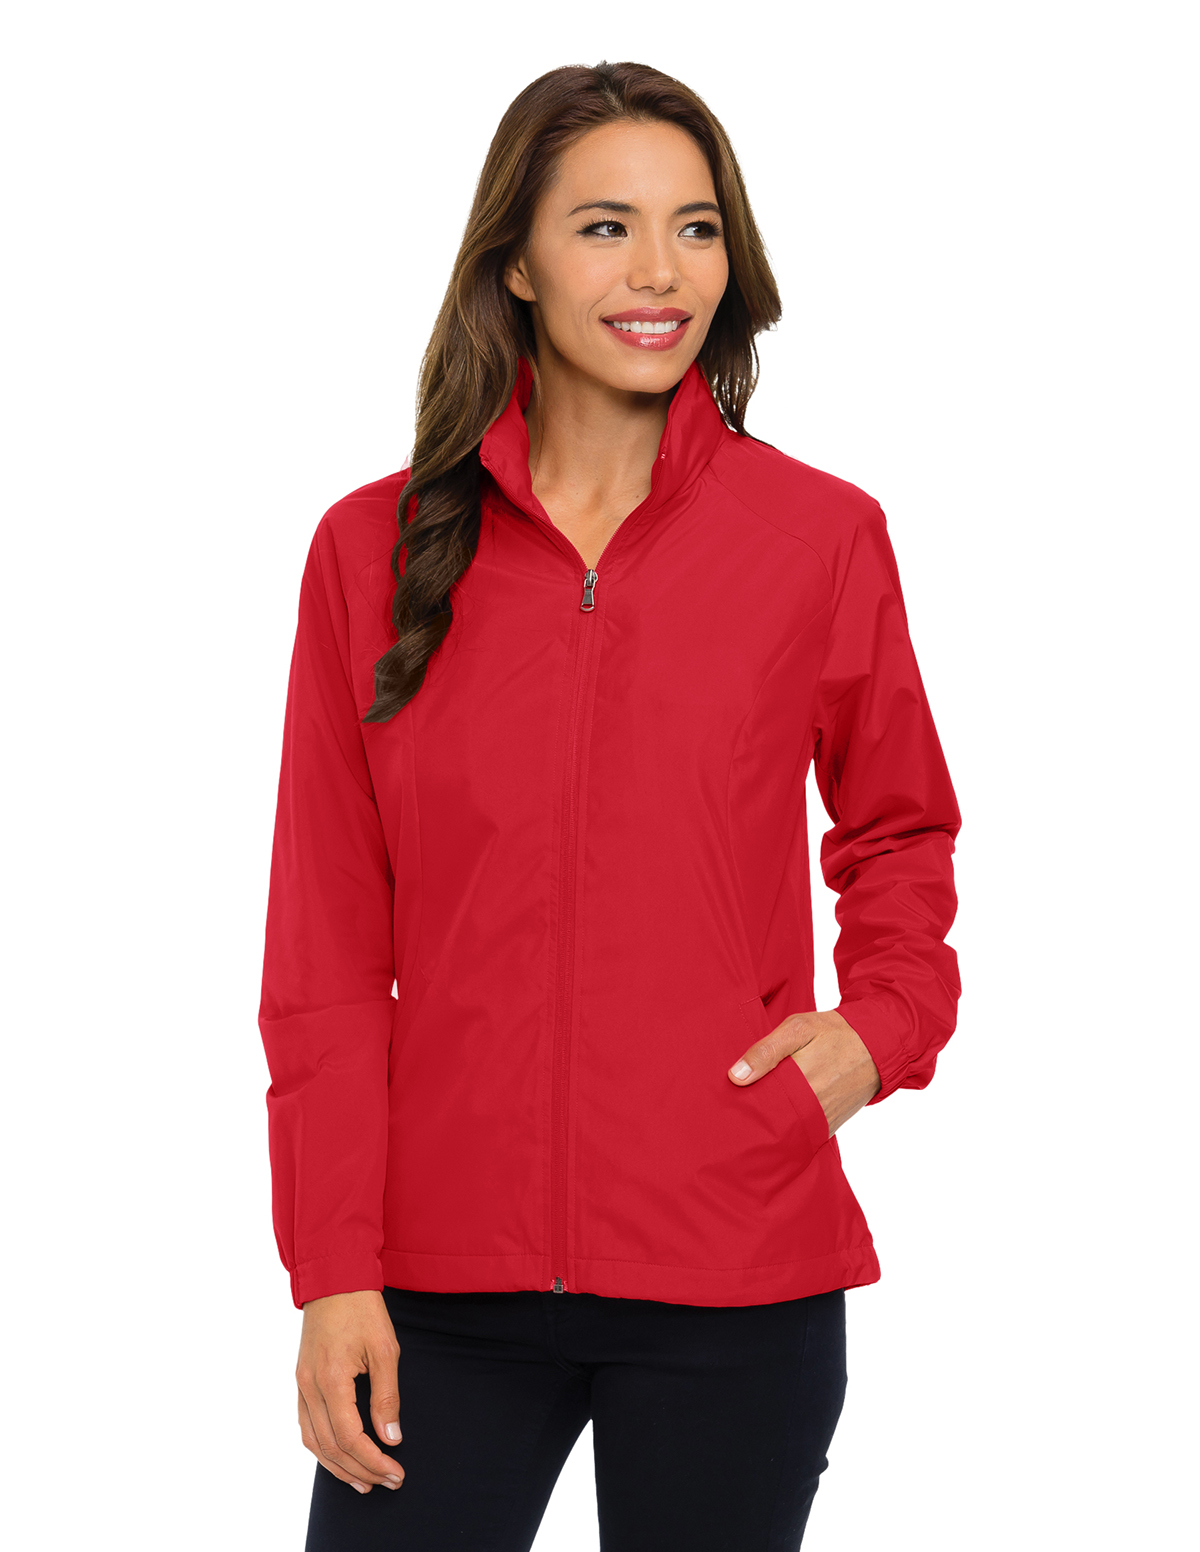 Tri-Mountain JL1400 - Lady Vital LWJ Women's 100% Polyester Lightweight Jacket